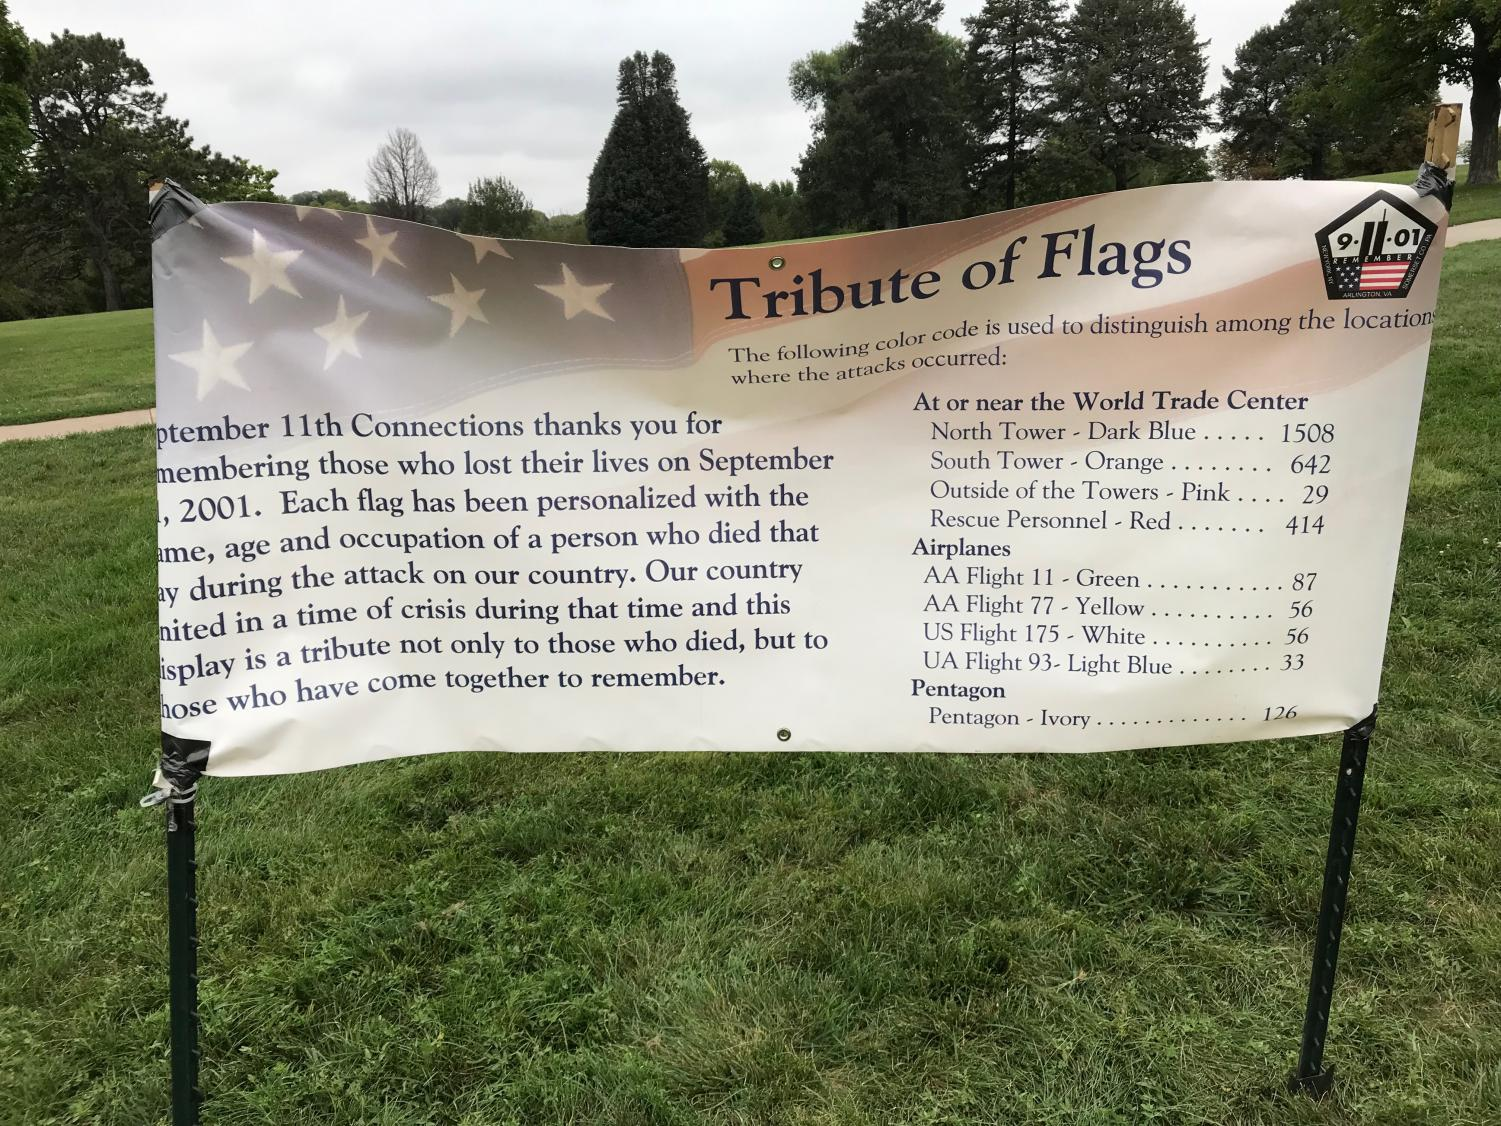 A+banner+explaining+what+each+flag+means.+Nearly+3000+people+died+on+September+11th%2C+the+worst+terrorist+attack+in+American+history.+